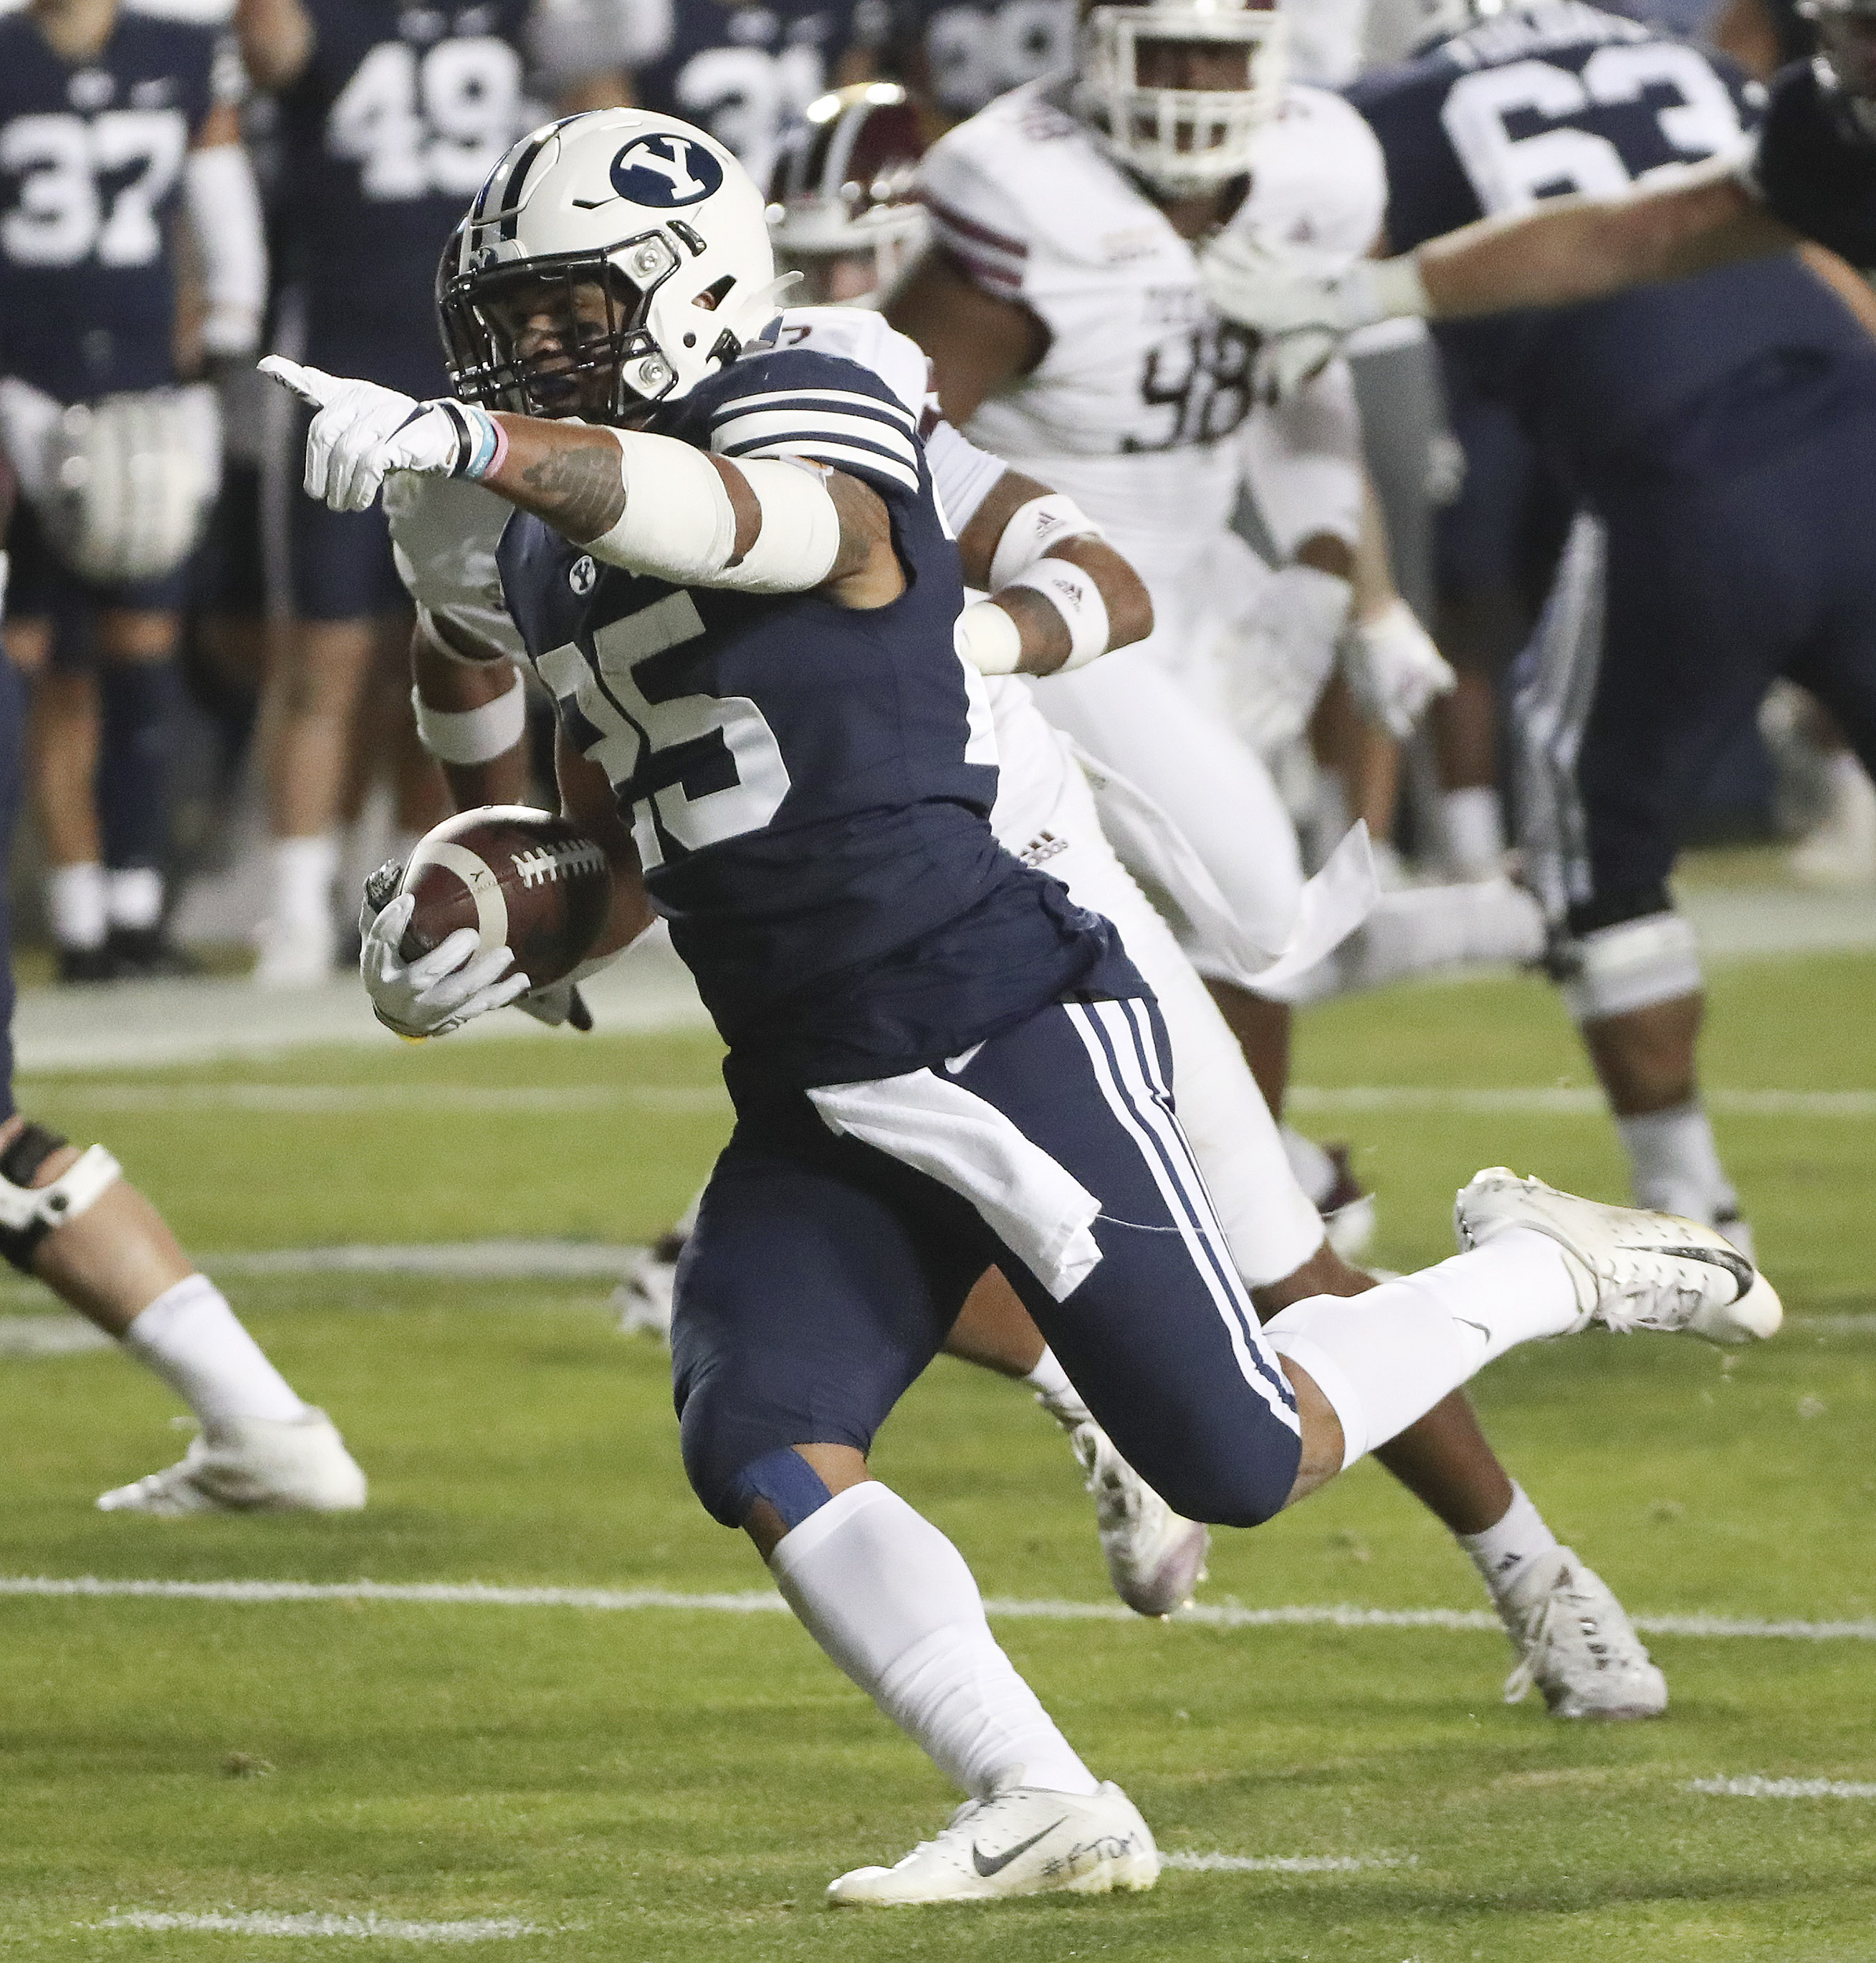 Brigham Young Cougars running back Tyler Allgeier (25) scores a touchdown against the Texas State Bobcats in Provo on Saturday, Oct. 24, 2020.